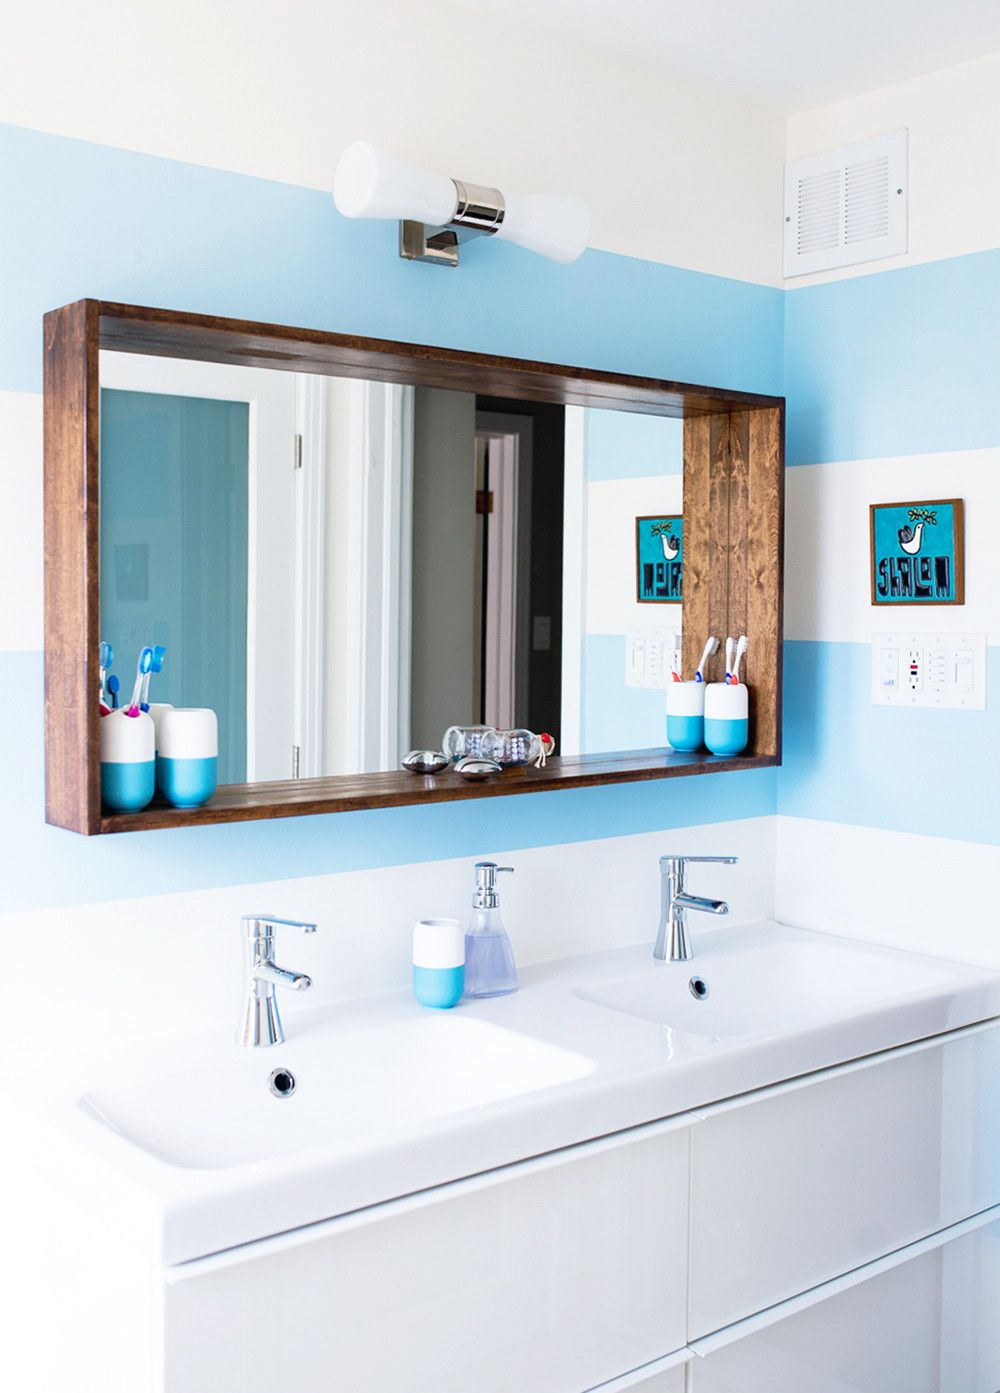 Bathroom Mirrors Design Ideas. Are You Searching For Bathroom Mirror Ideas And Inspiration Browse Our Photo Gallery And Selection Of Custom Mirror Frames